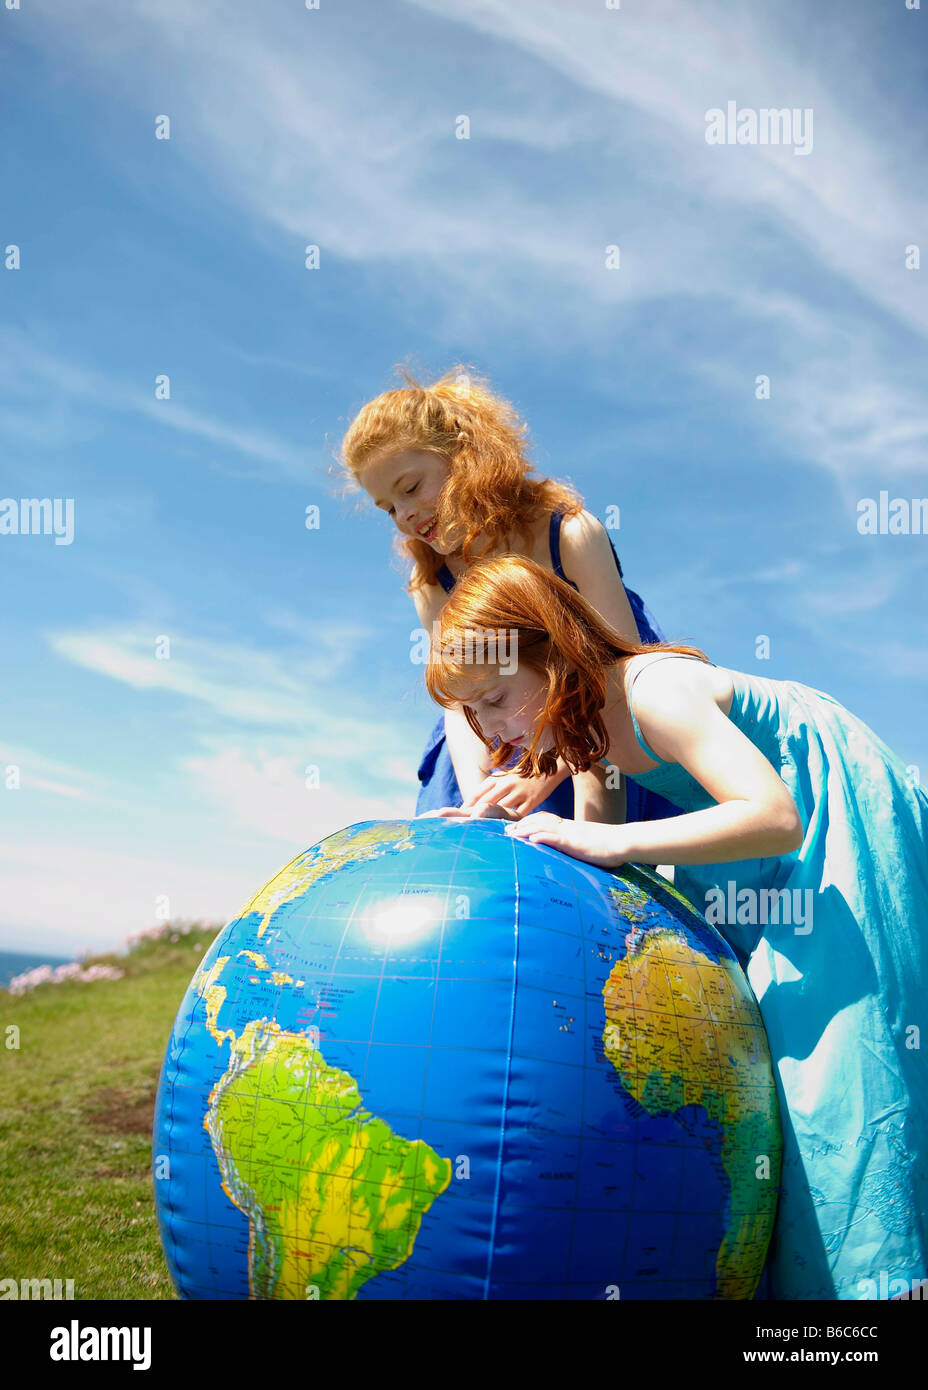 2 girls looking at inflatable globe - Stock Image